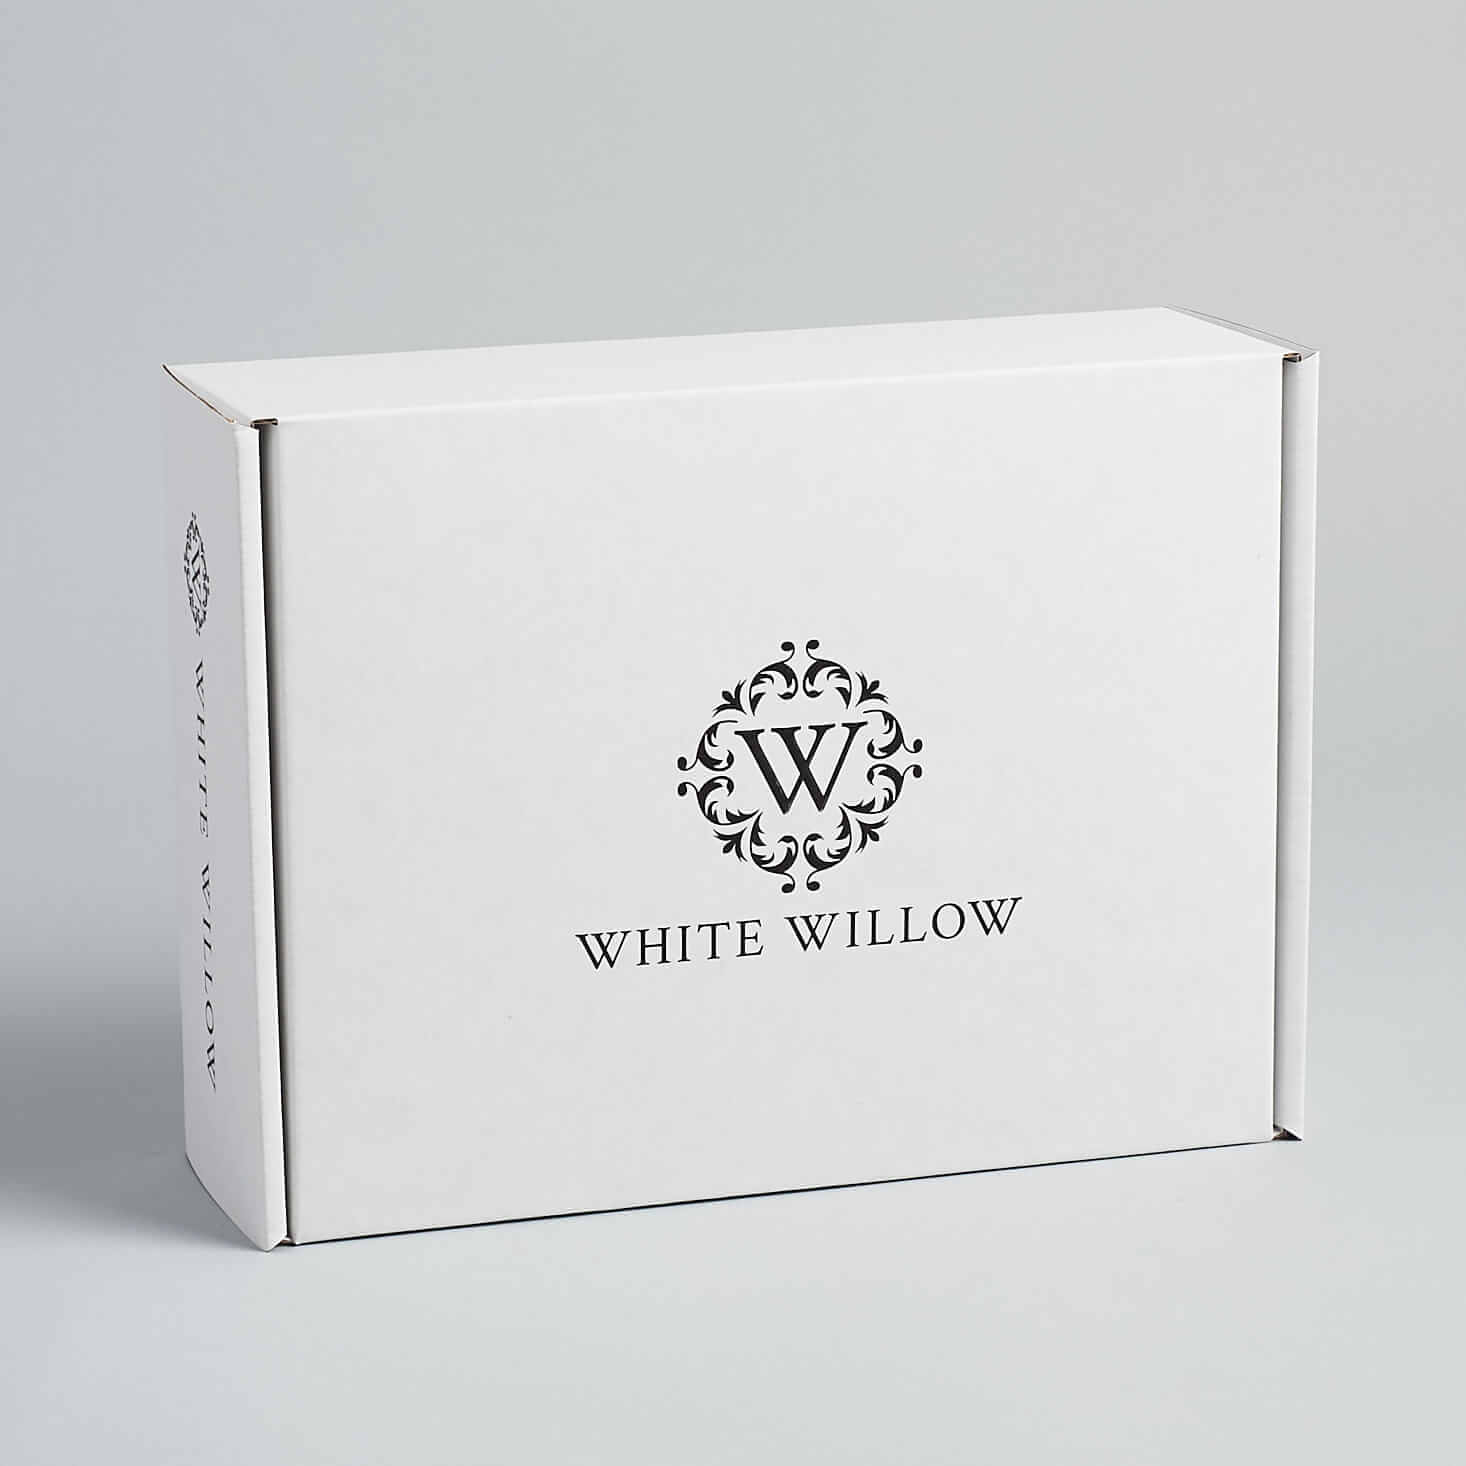 White-Willow-Packhelp Minimalism Article